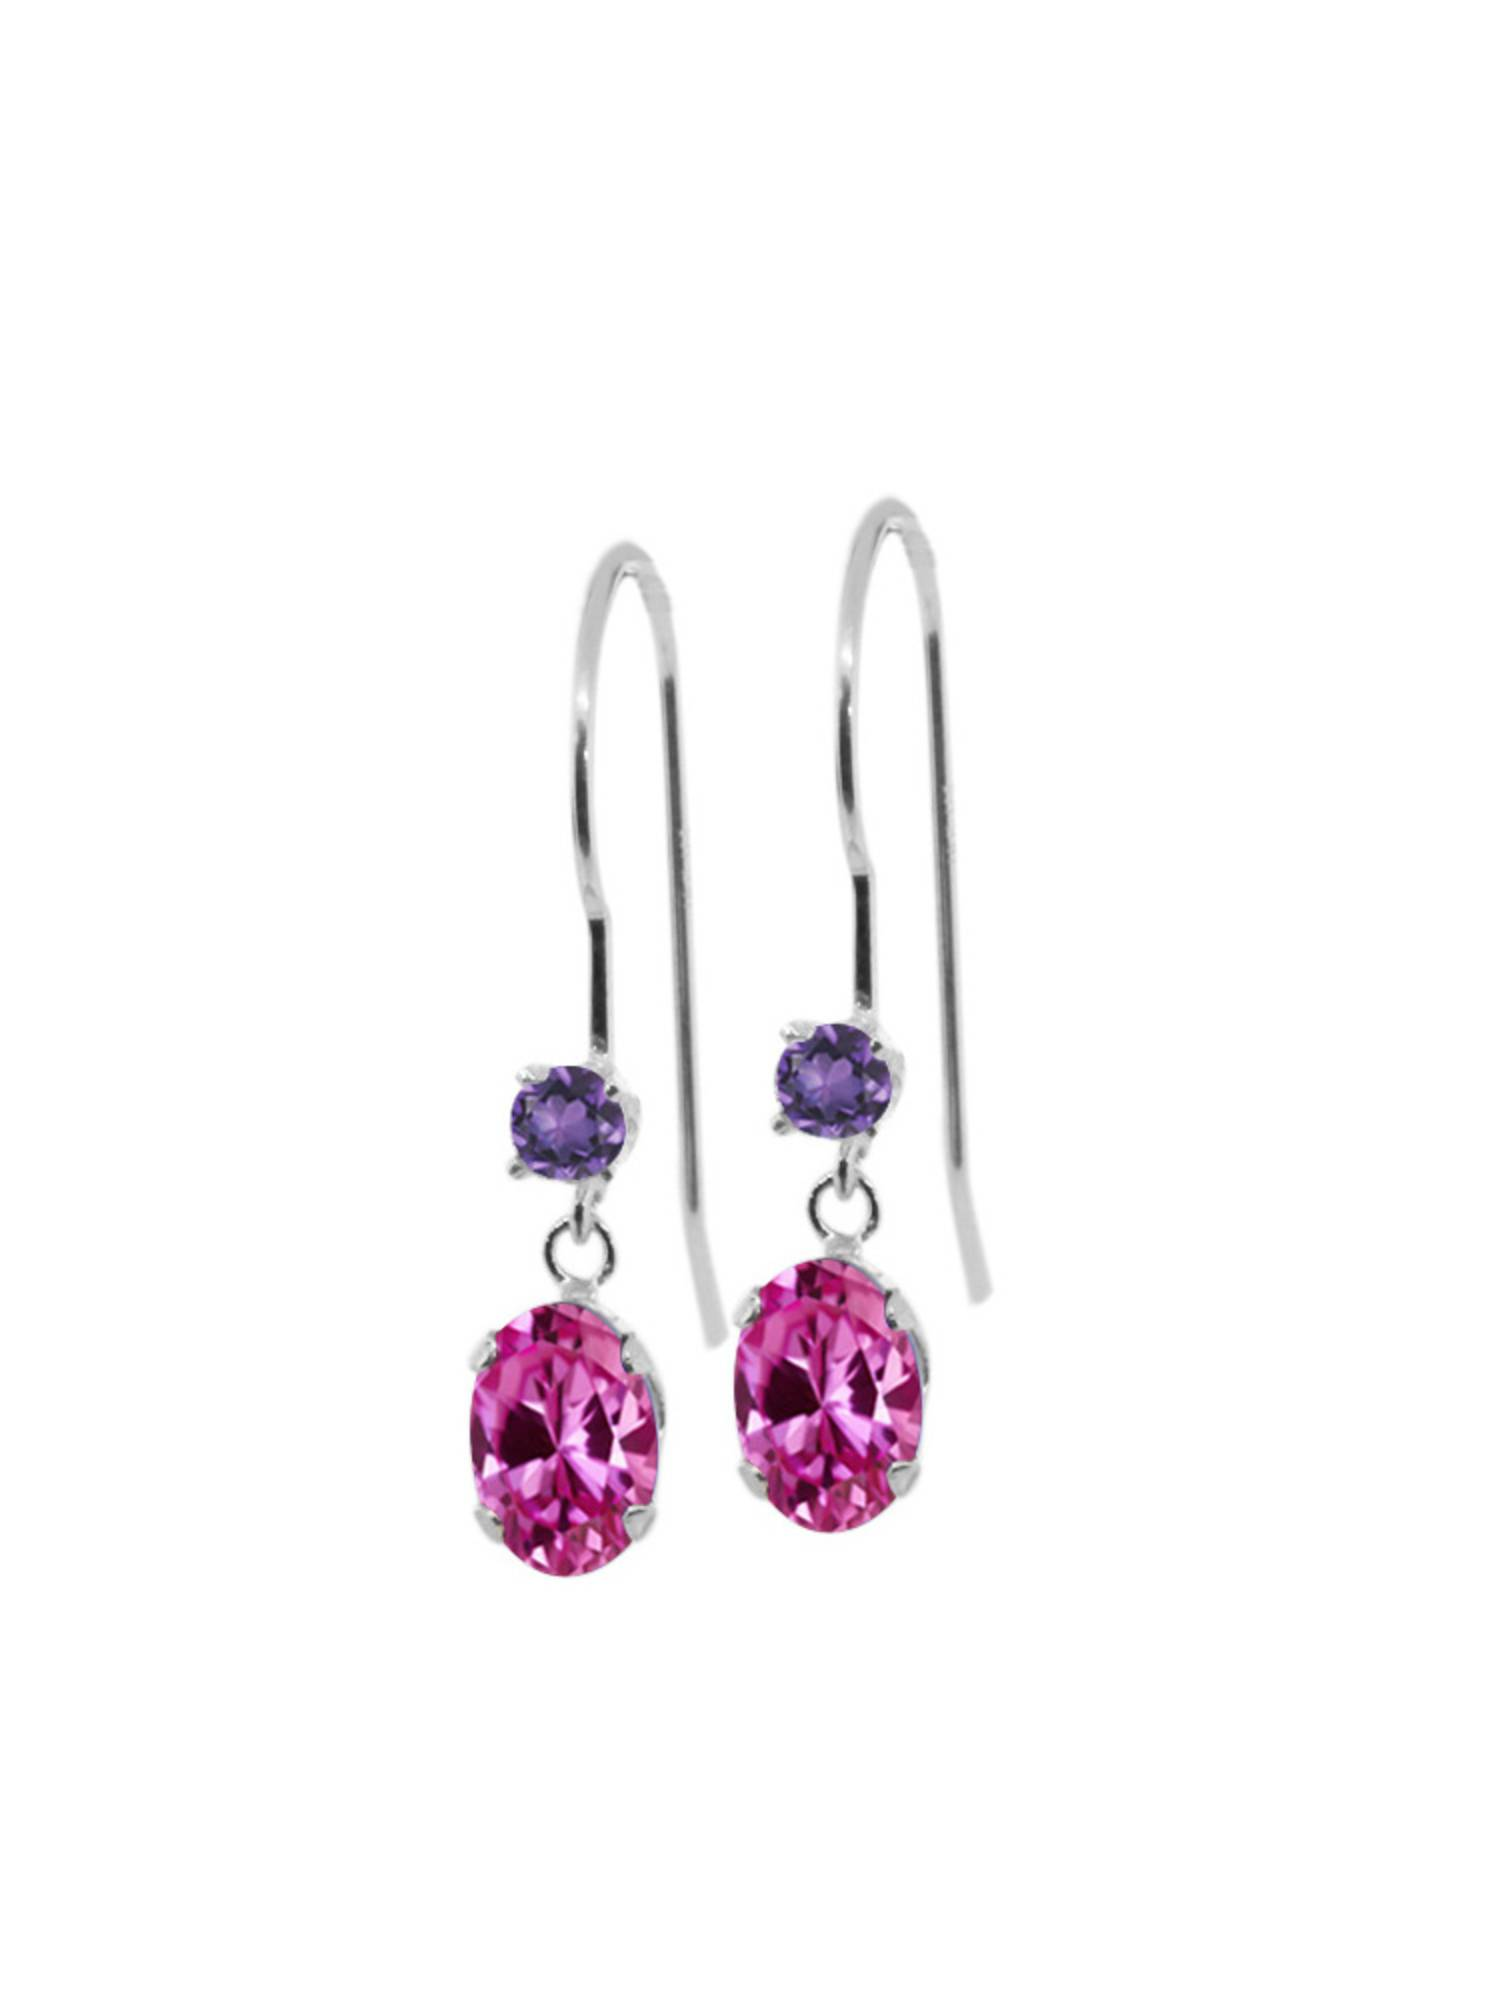 1.32 Ct Oval Pink Created Sapphire Purple Amethyst 14K White Gold Earrings by